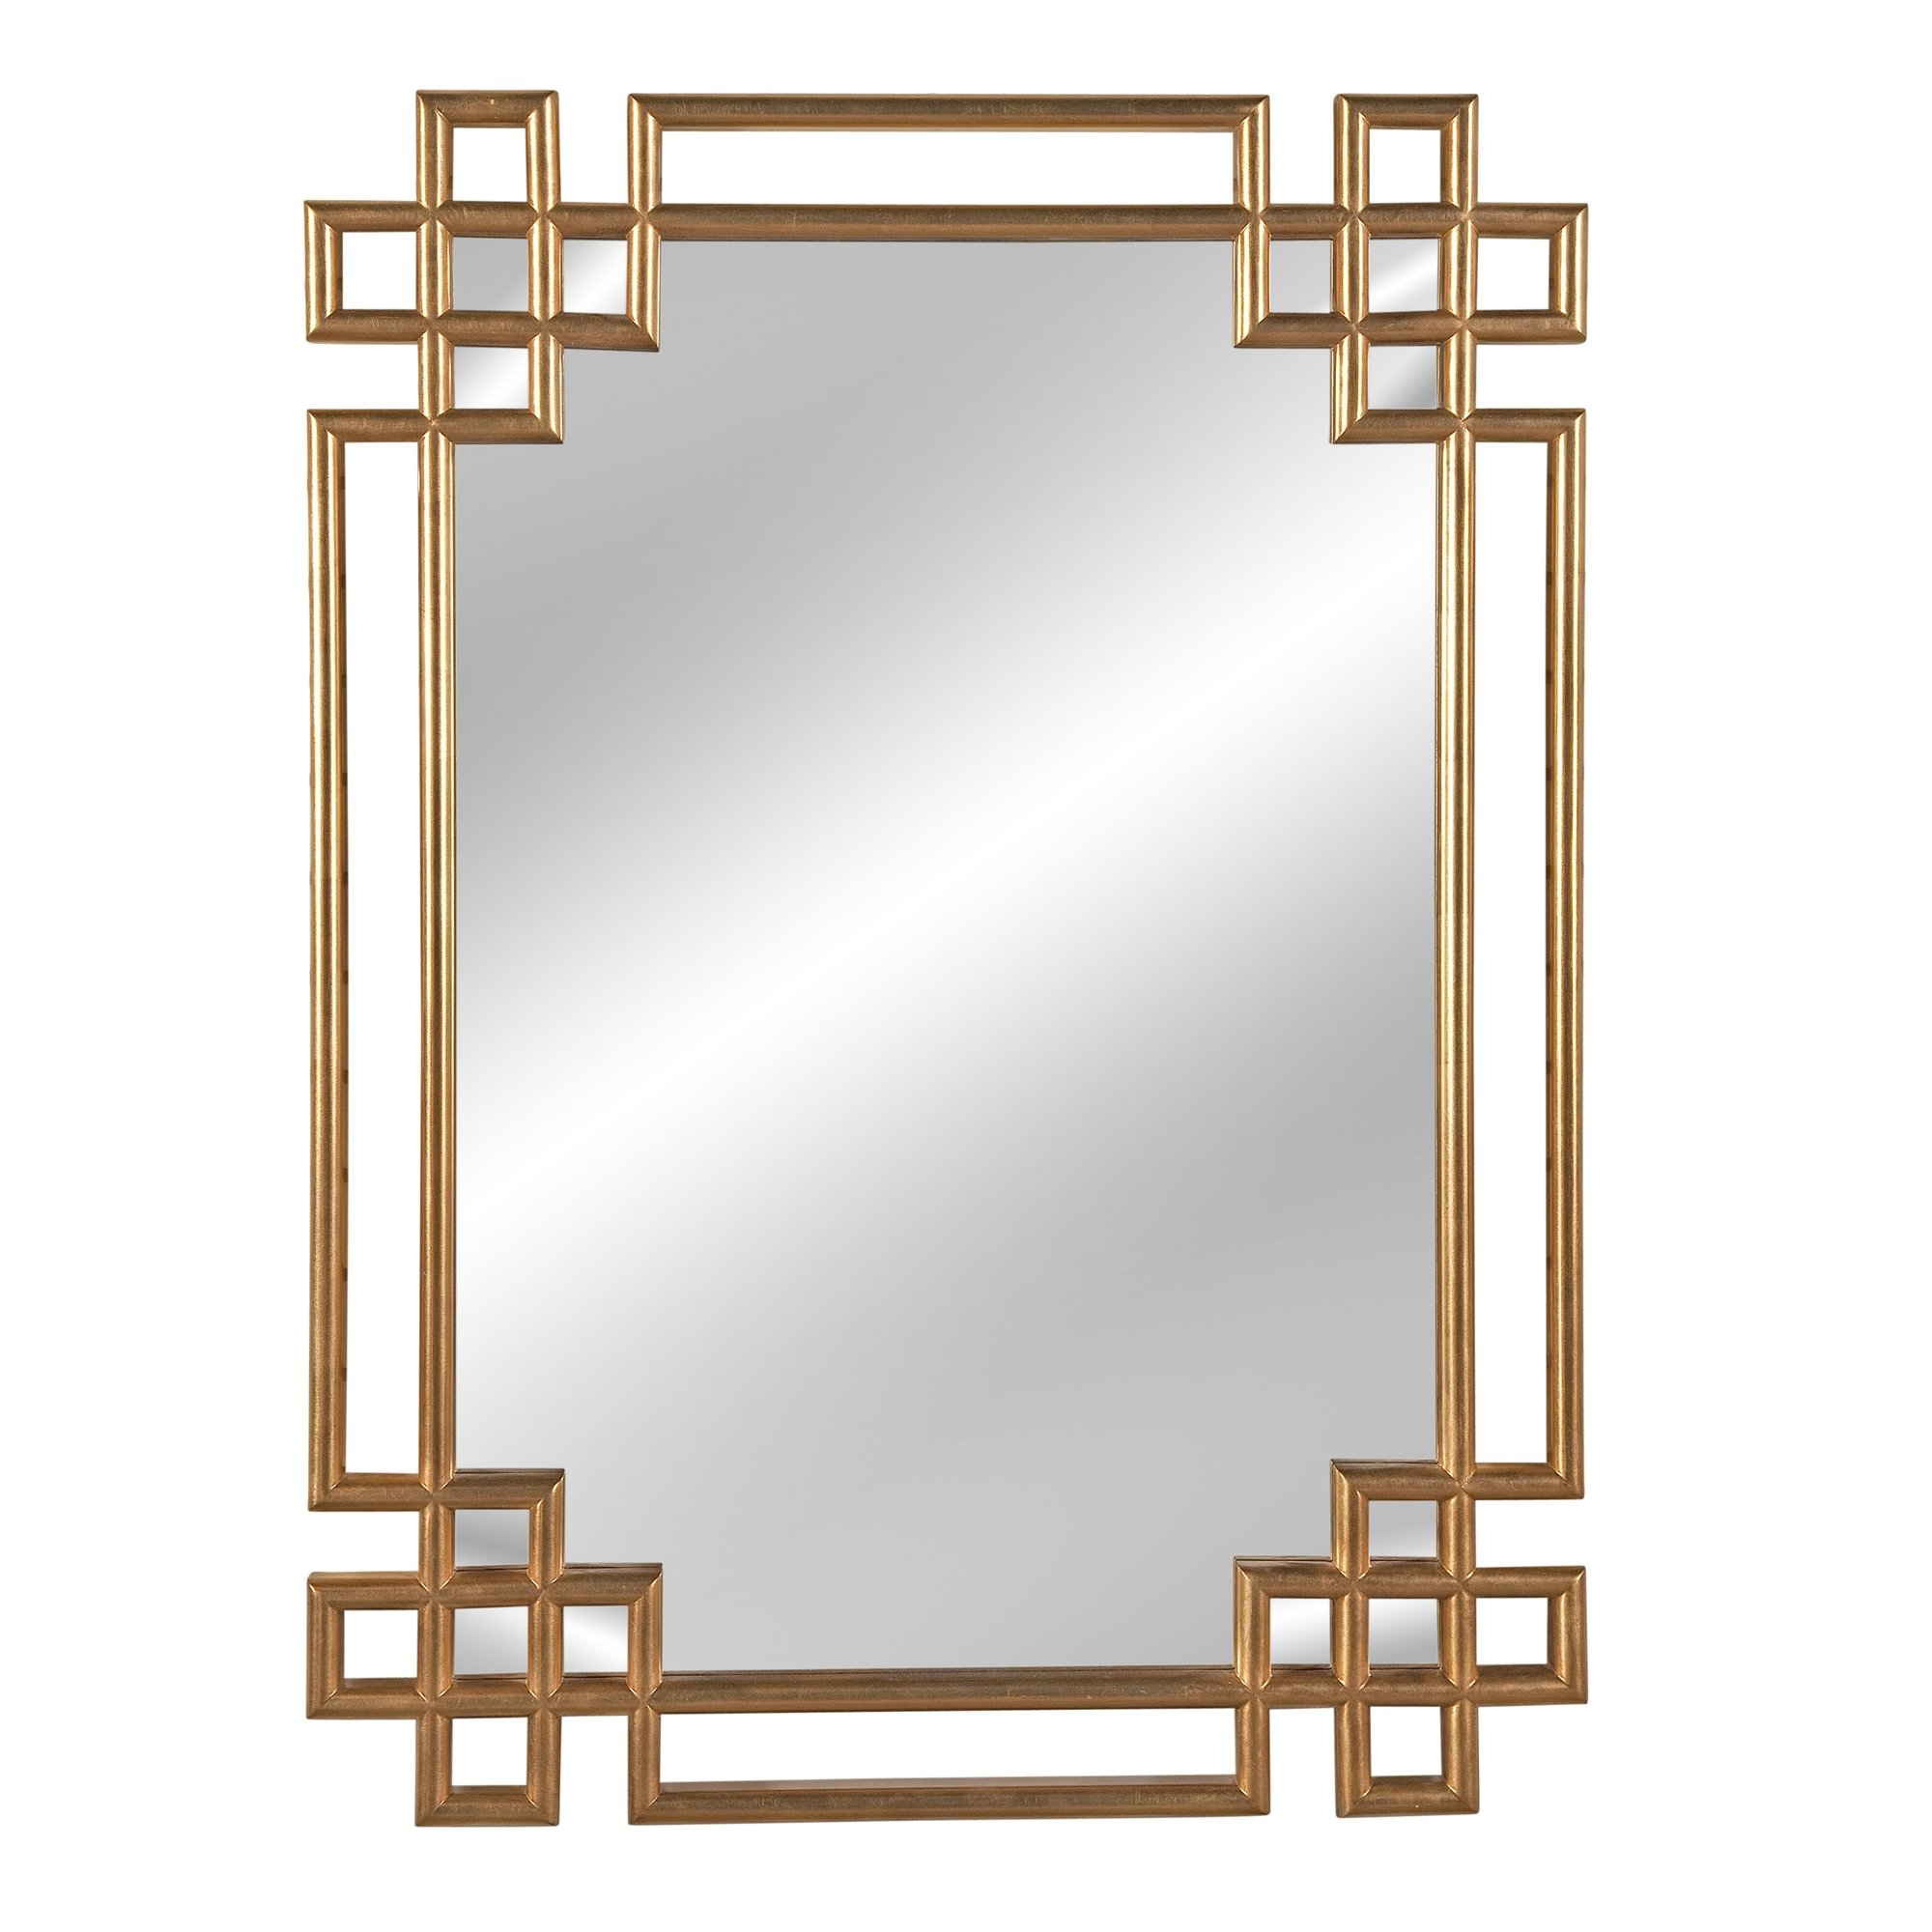 Mercer41 Rectangle Gold Wall Mirror Reviews Wayfair In Gold Table Mirror (Image 8 of 15)